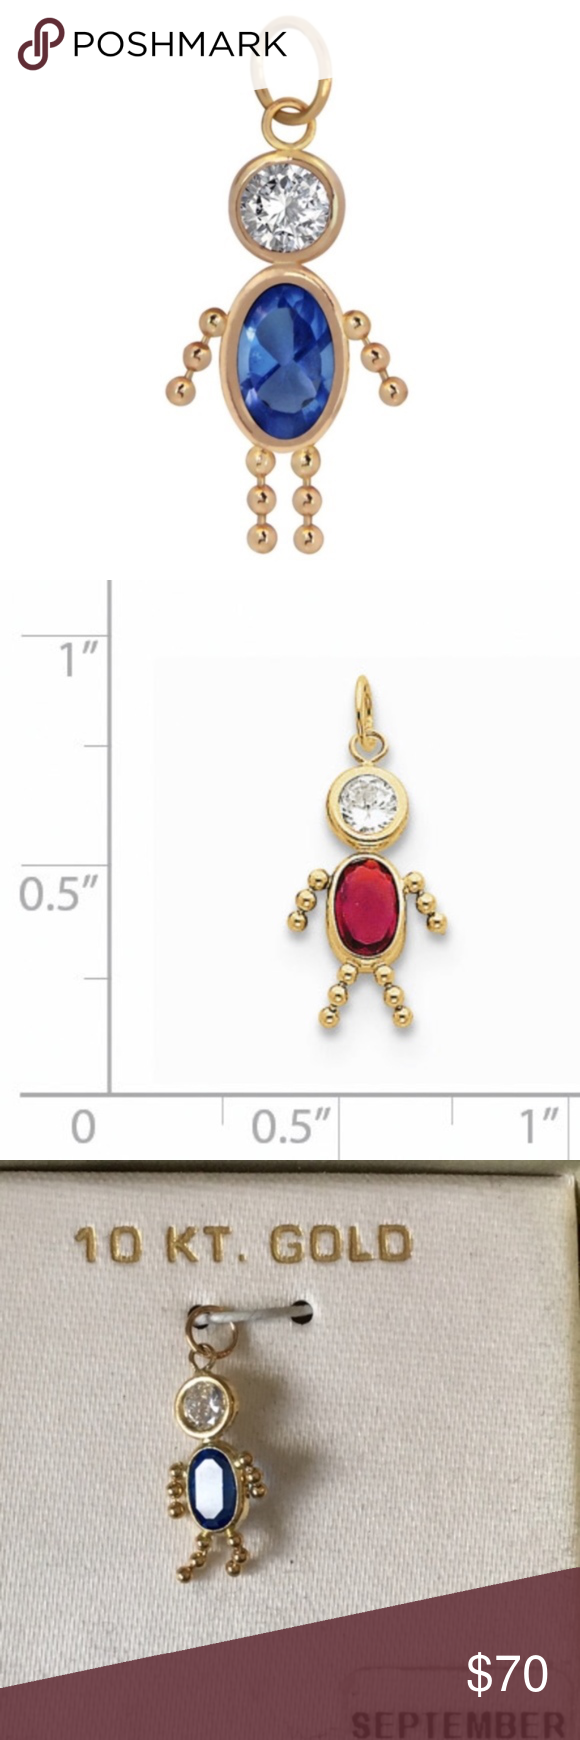 Birthstone Babies Boy Charm September 10k Gold Brand Unbranded Material 10k Gold Measures About 75 Long Pendant Measures Abou Birthstones Gold Jewelry